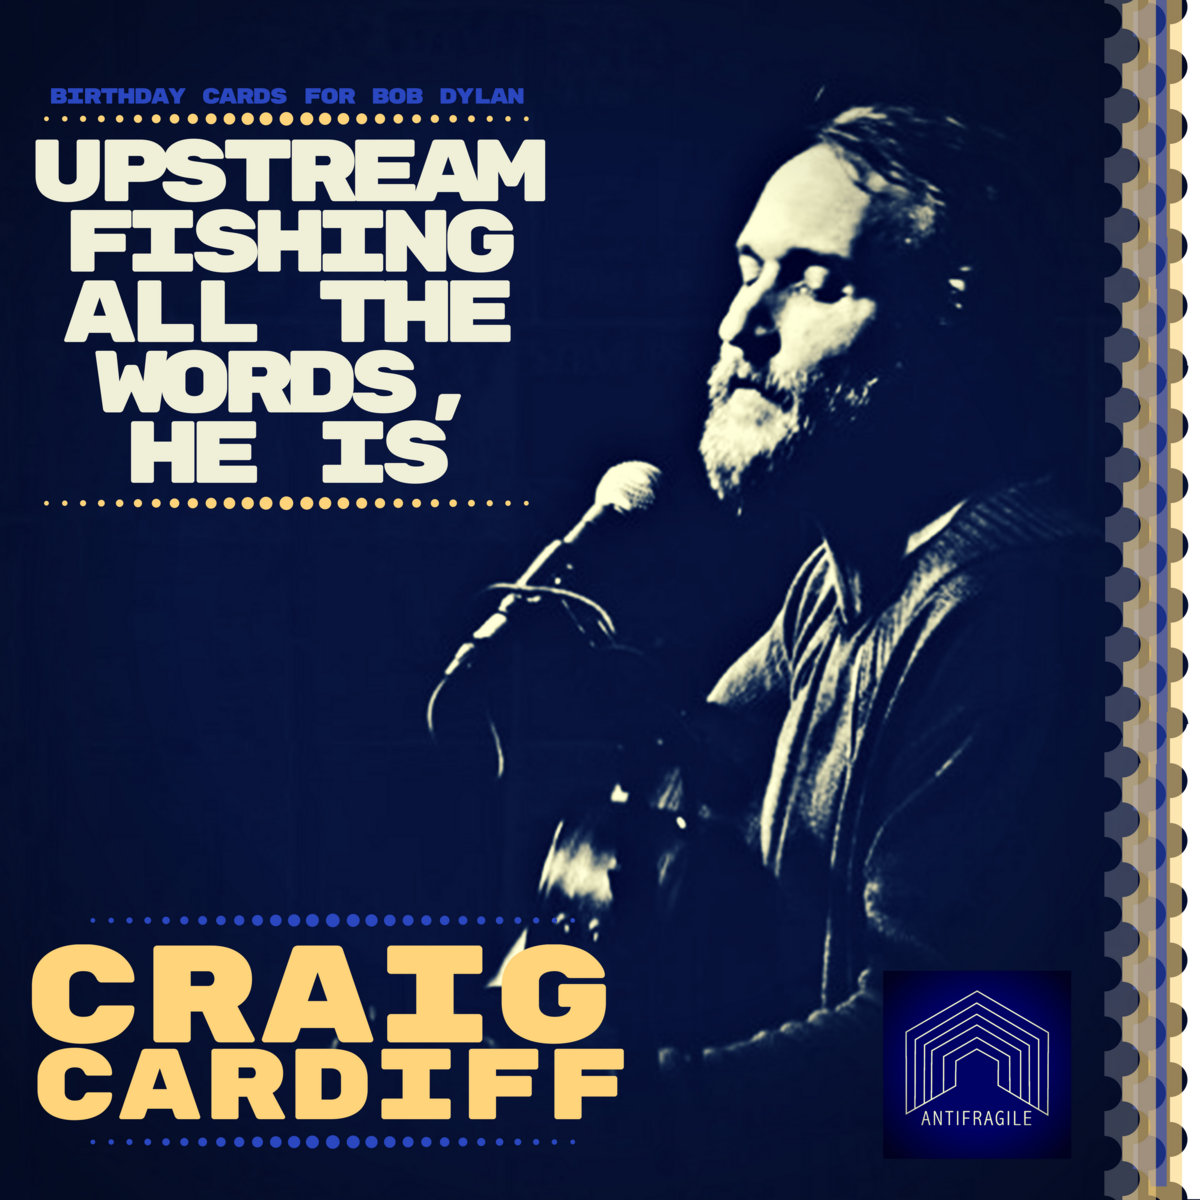 Upstream Fishing All The Words He Is Birthday Cards For Bob Dylan